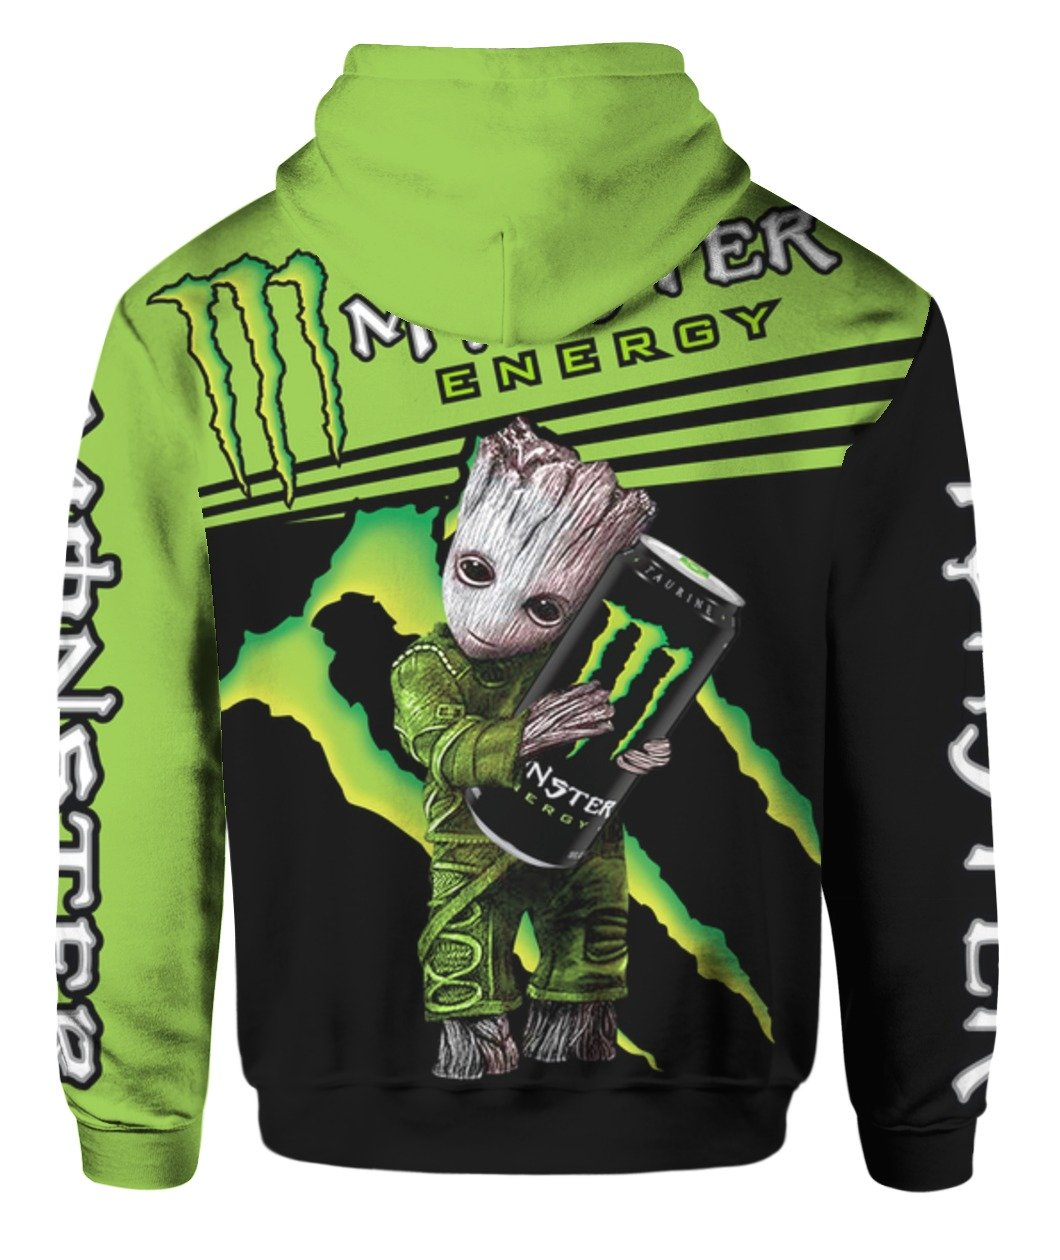 Baby groot and monster energy all over print hoodie 2